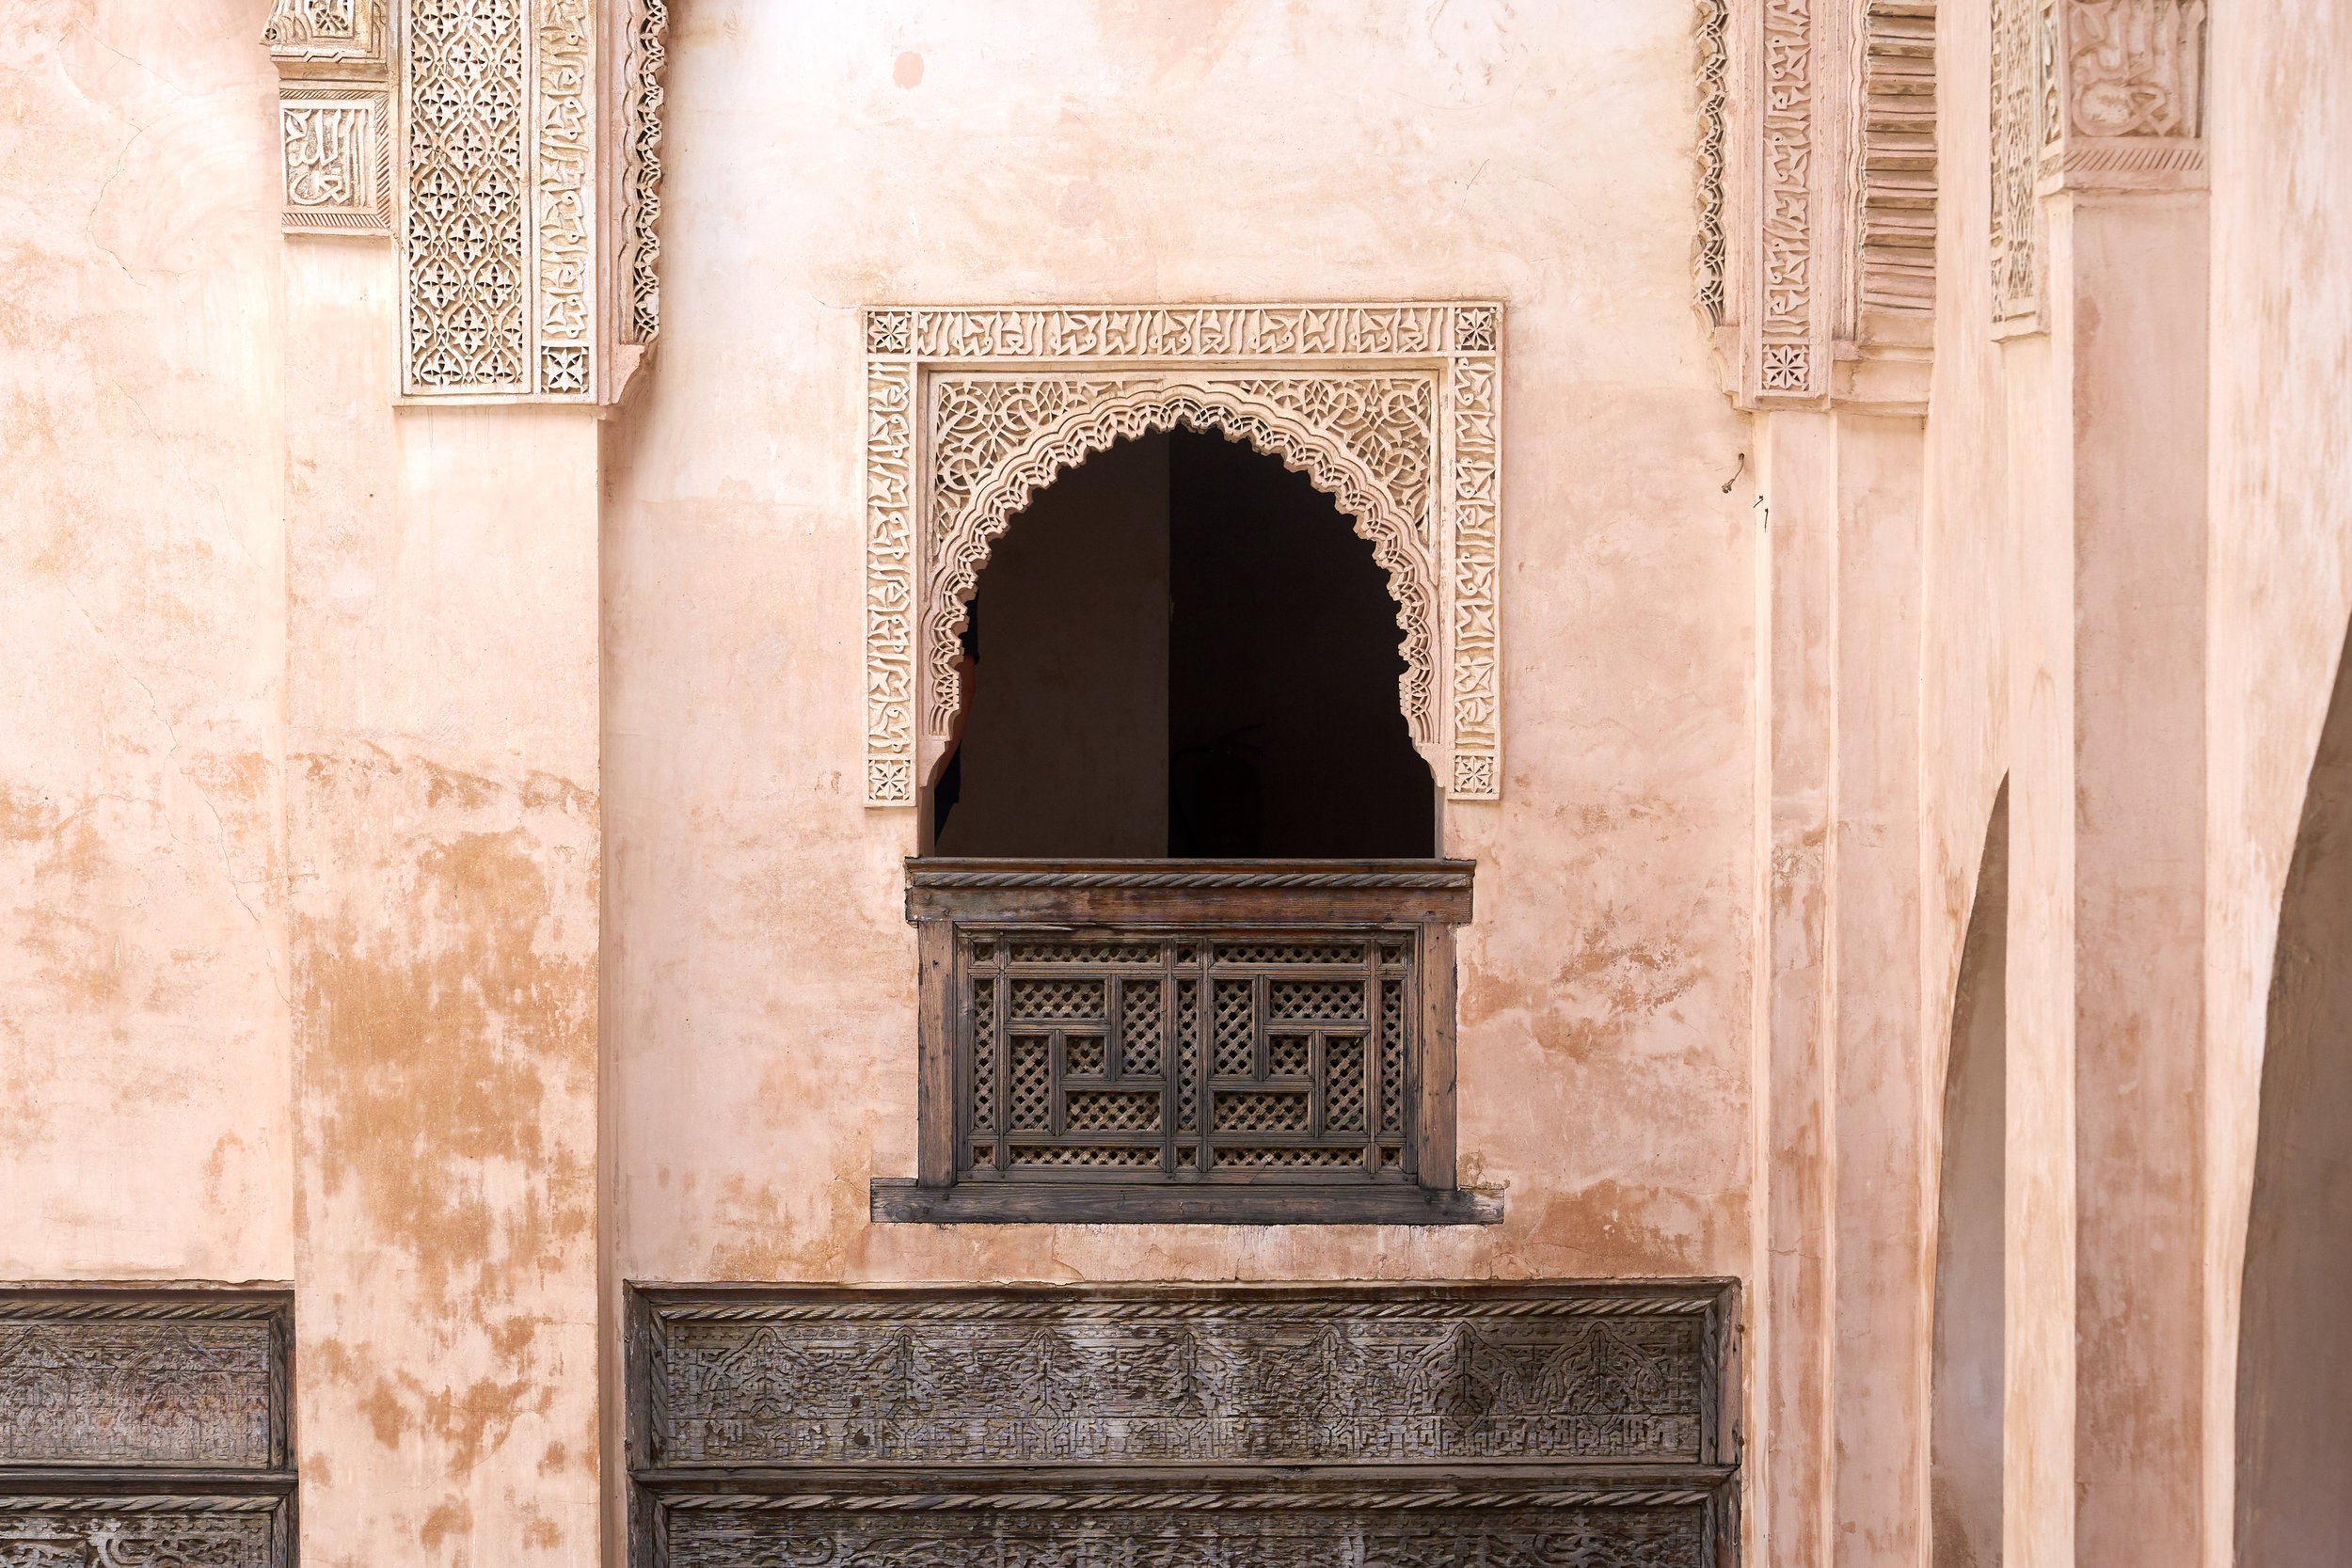 Modesty is the best policy when packing for a tour of Fez's show-stopping sacred architecture.